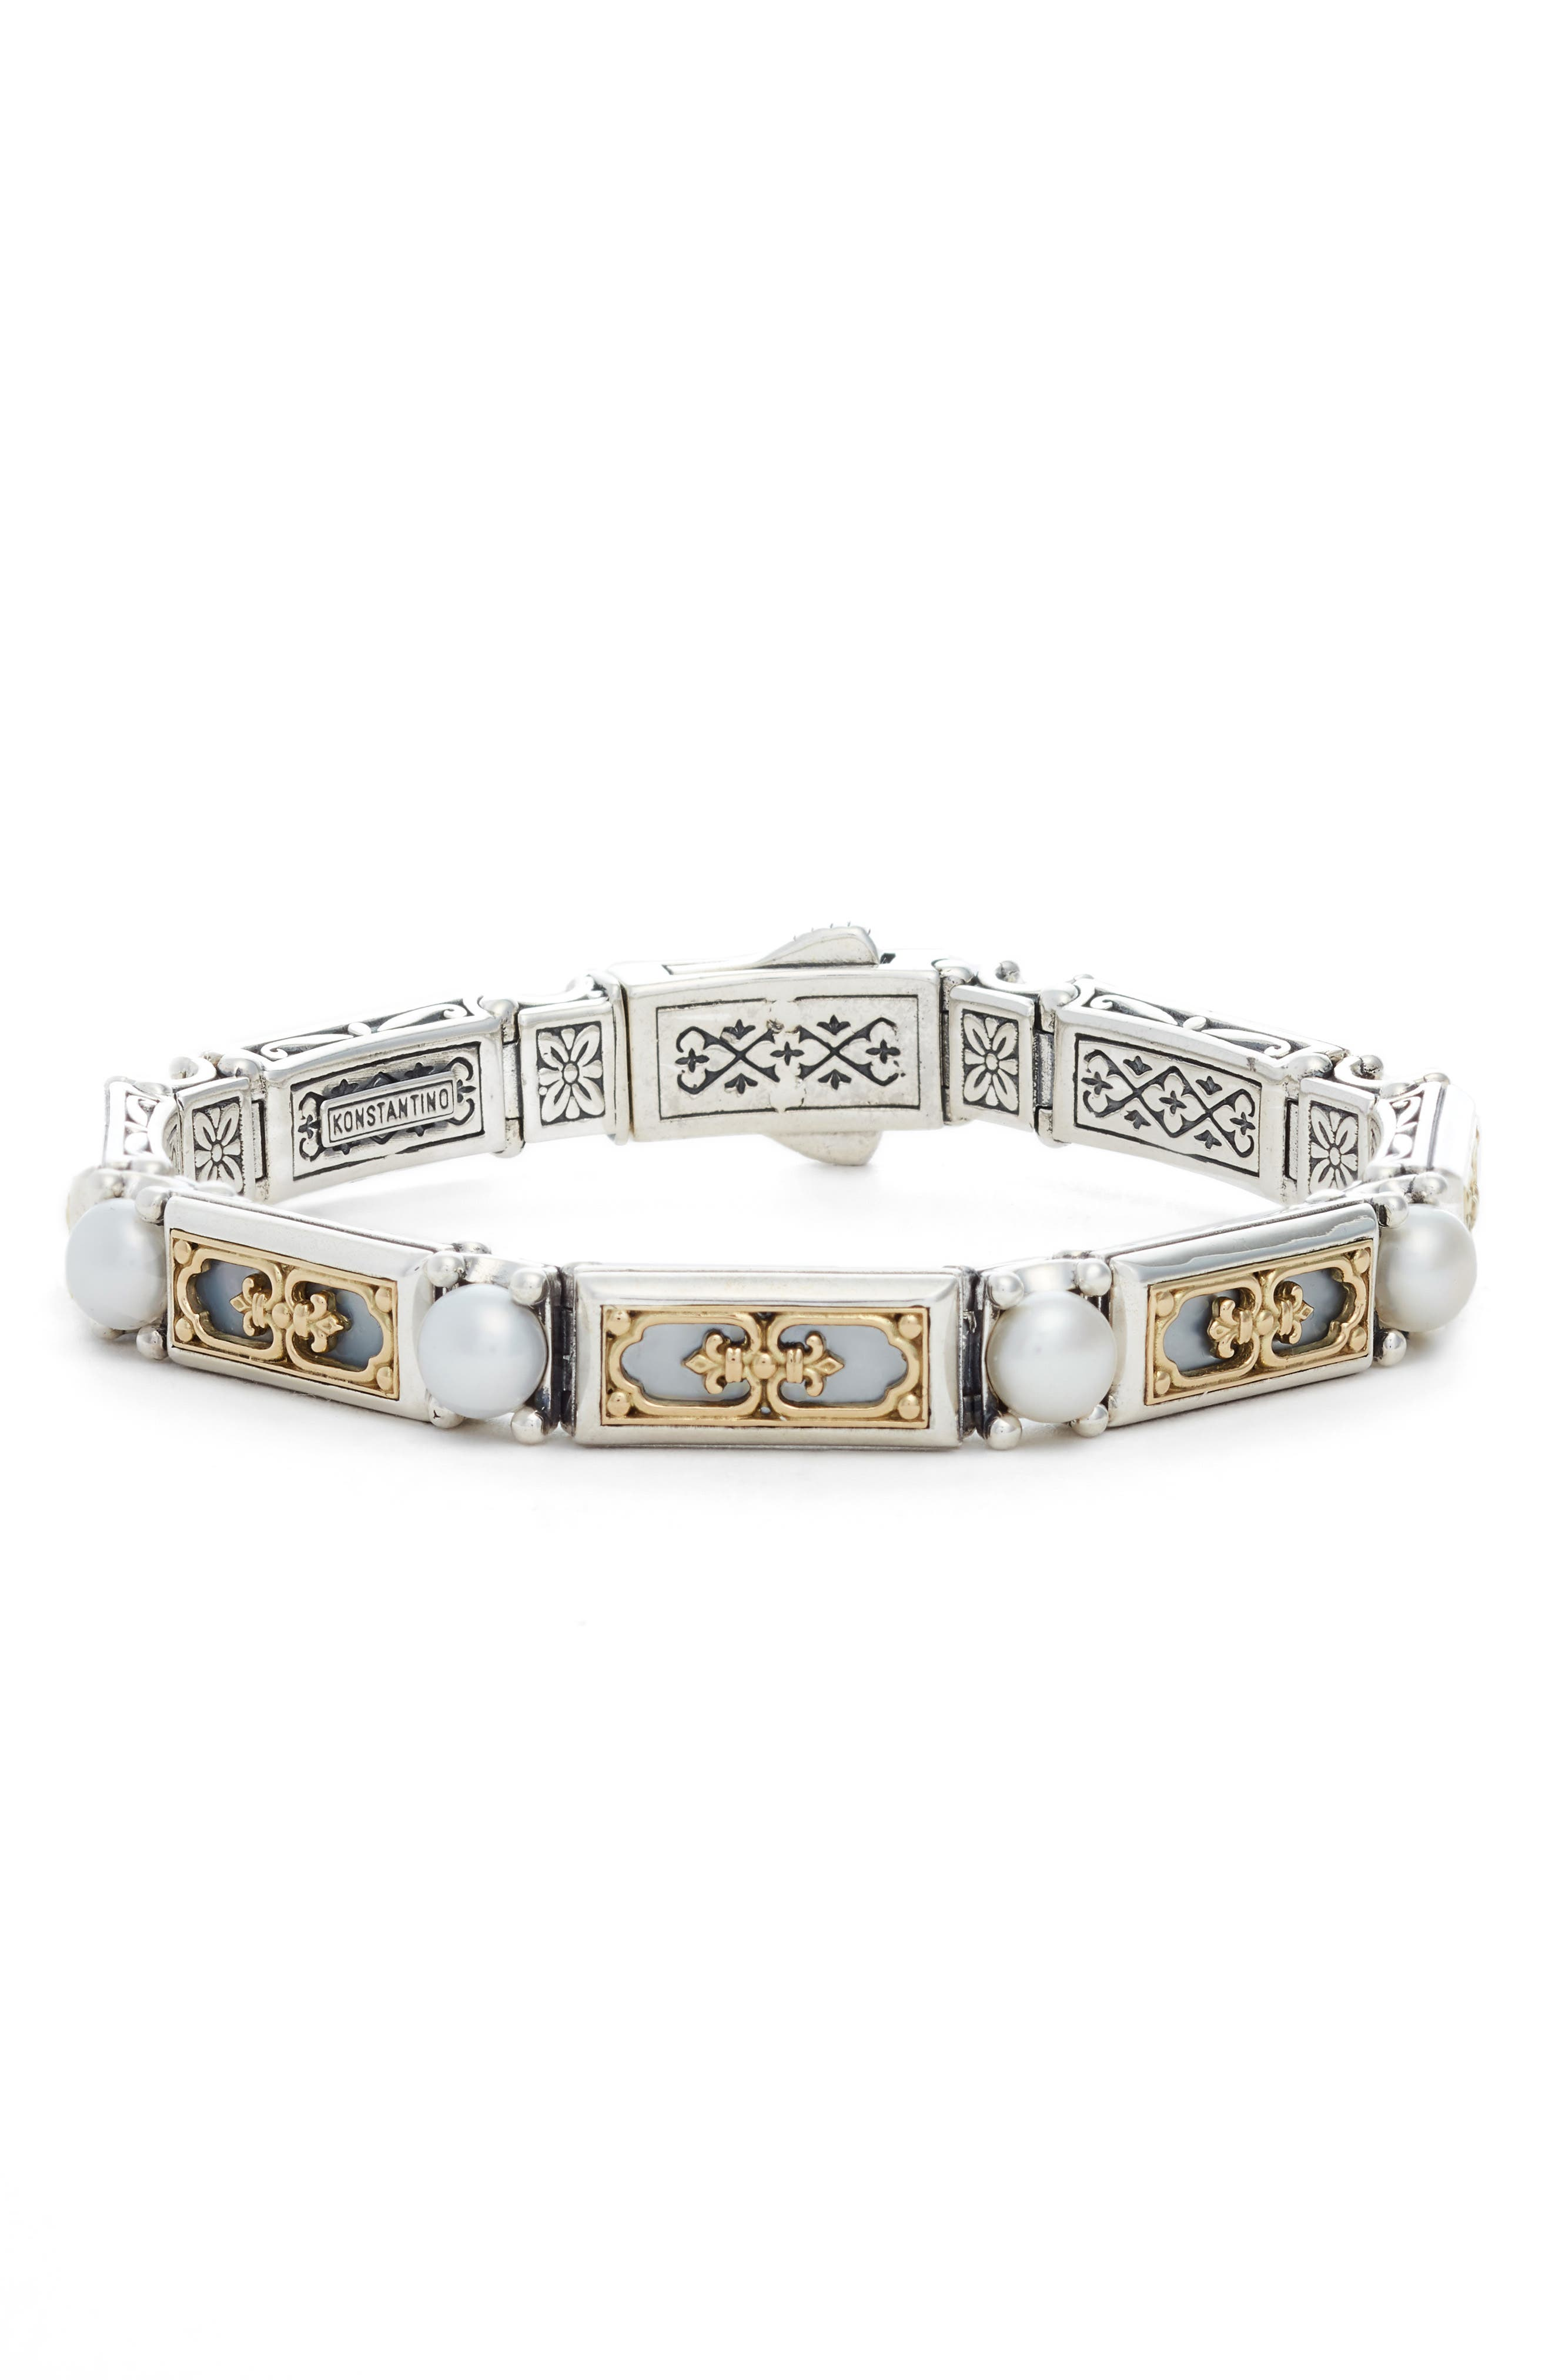 Etched Silver & Gold Link Bracelet with Genuine Pearl,                         Main,                         color, SILVER/ GOLD/ WHITE